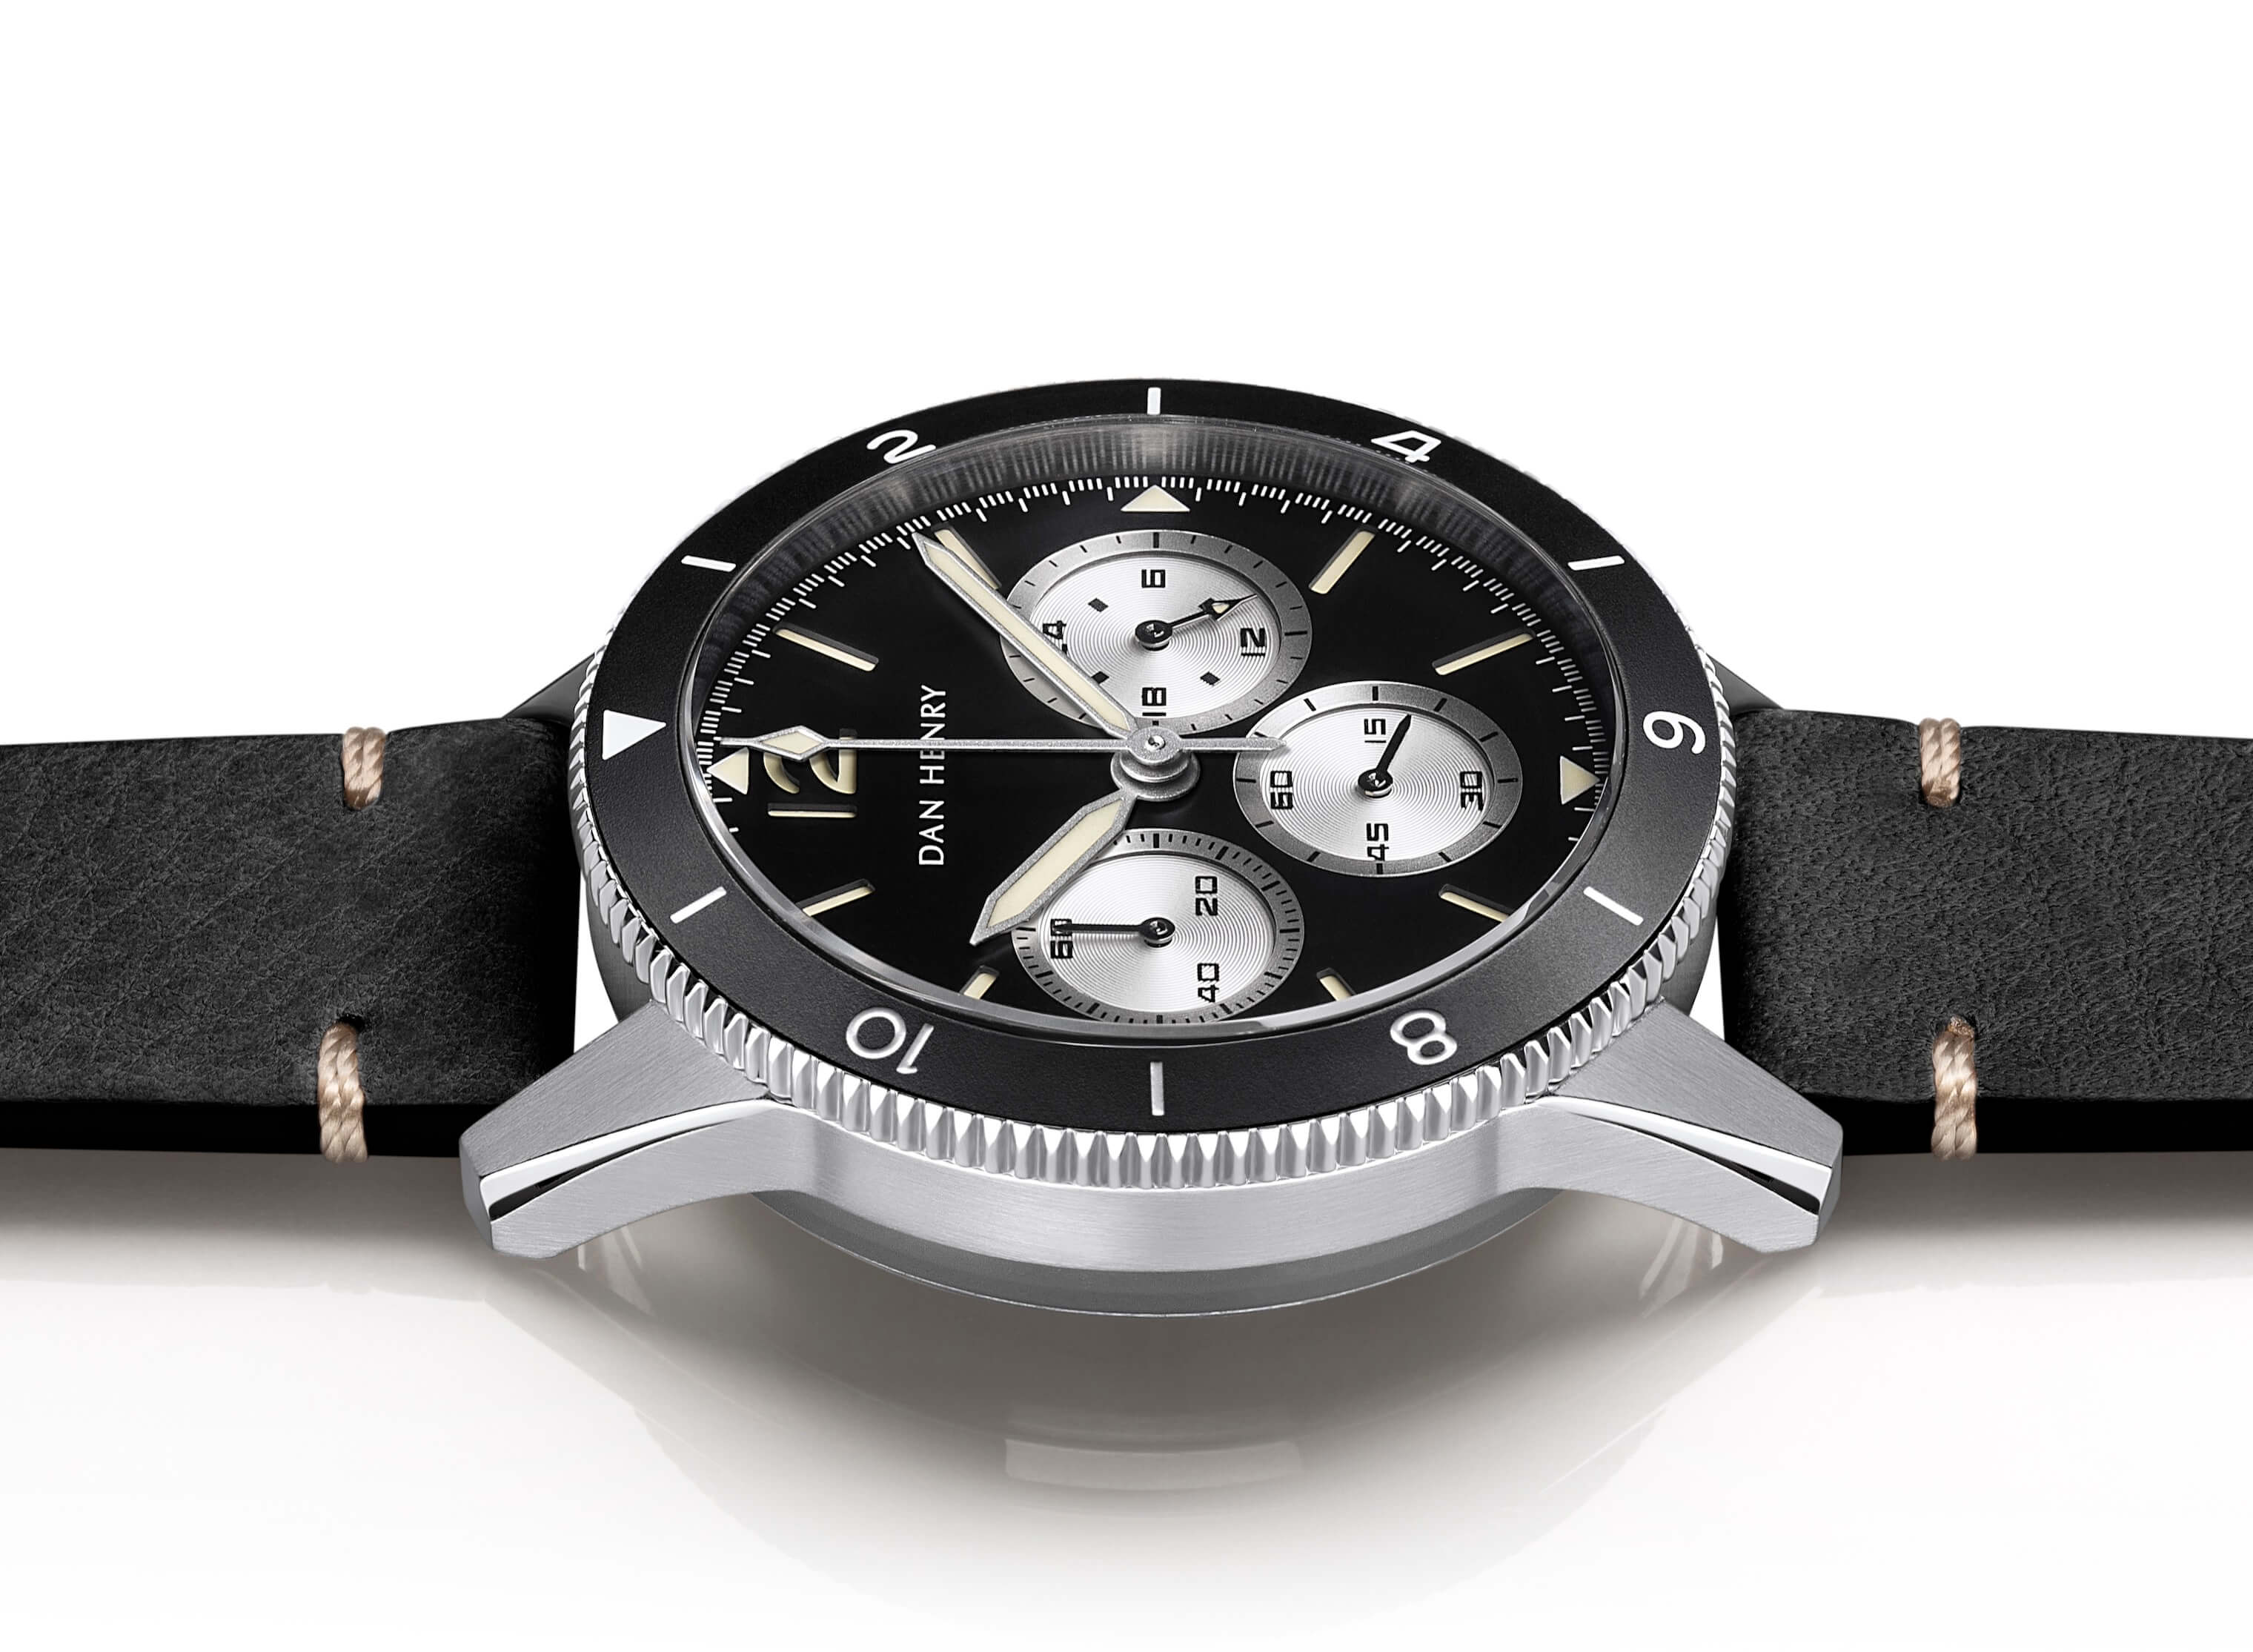 <h3>Bezel</h3>Stainless steel 12-hour rotating GMT bezel with 5-min click